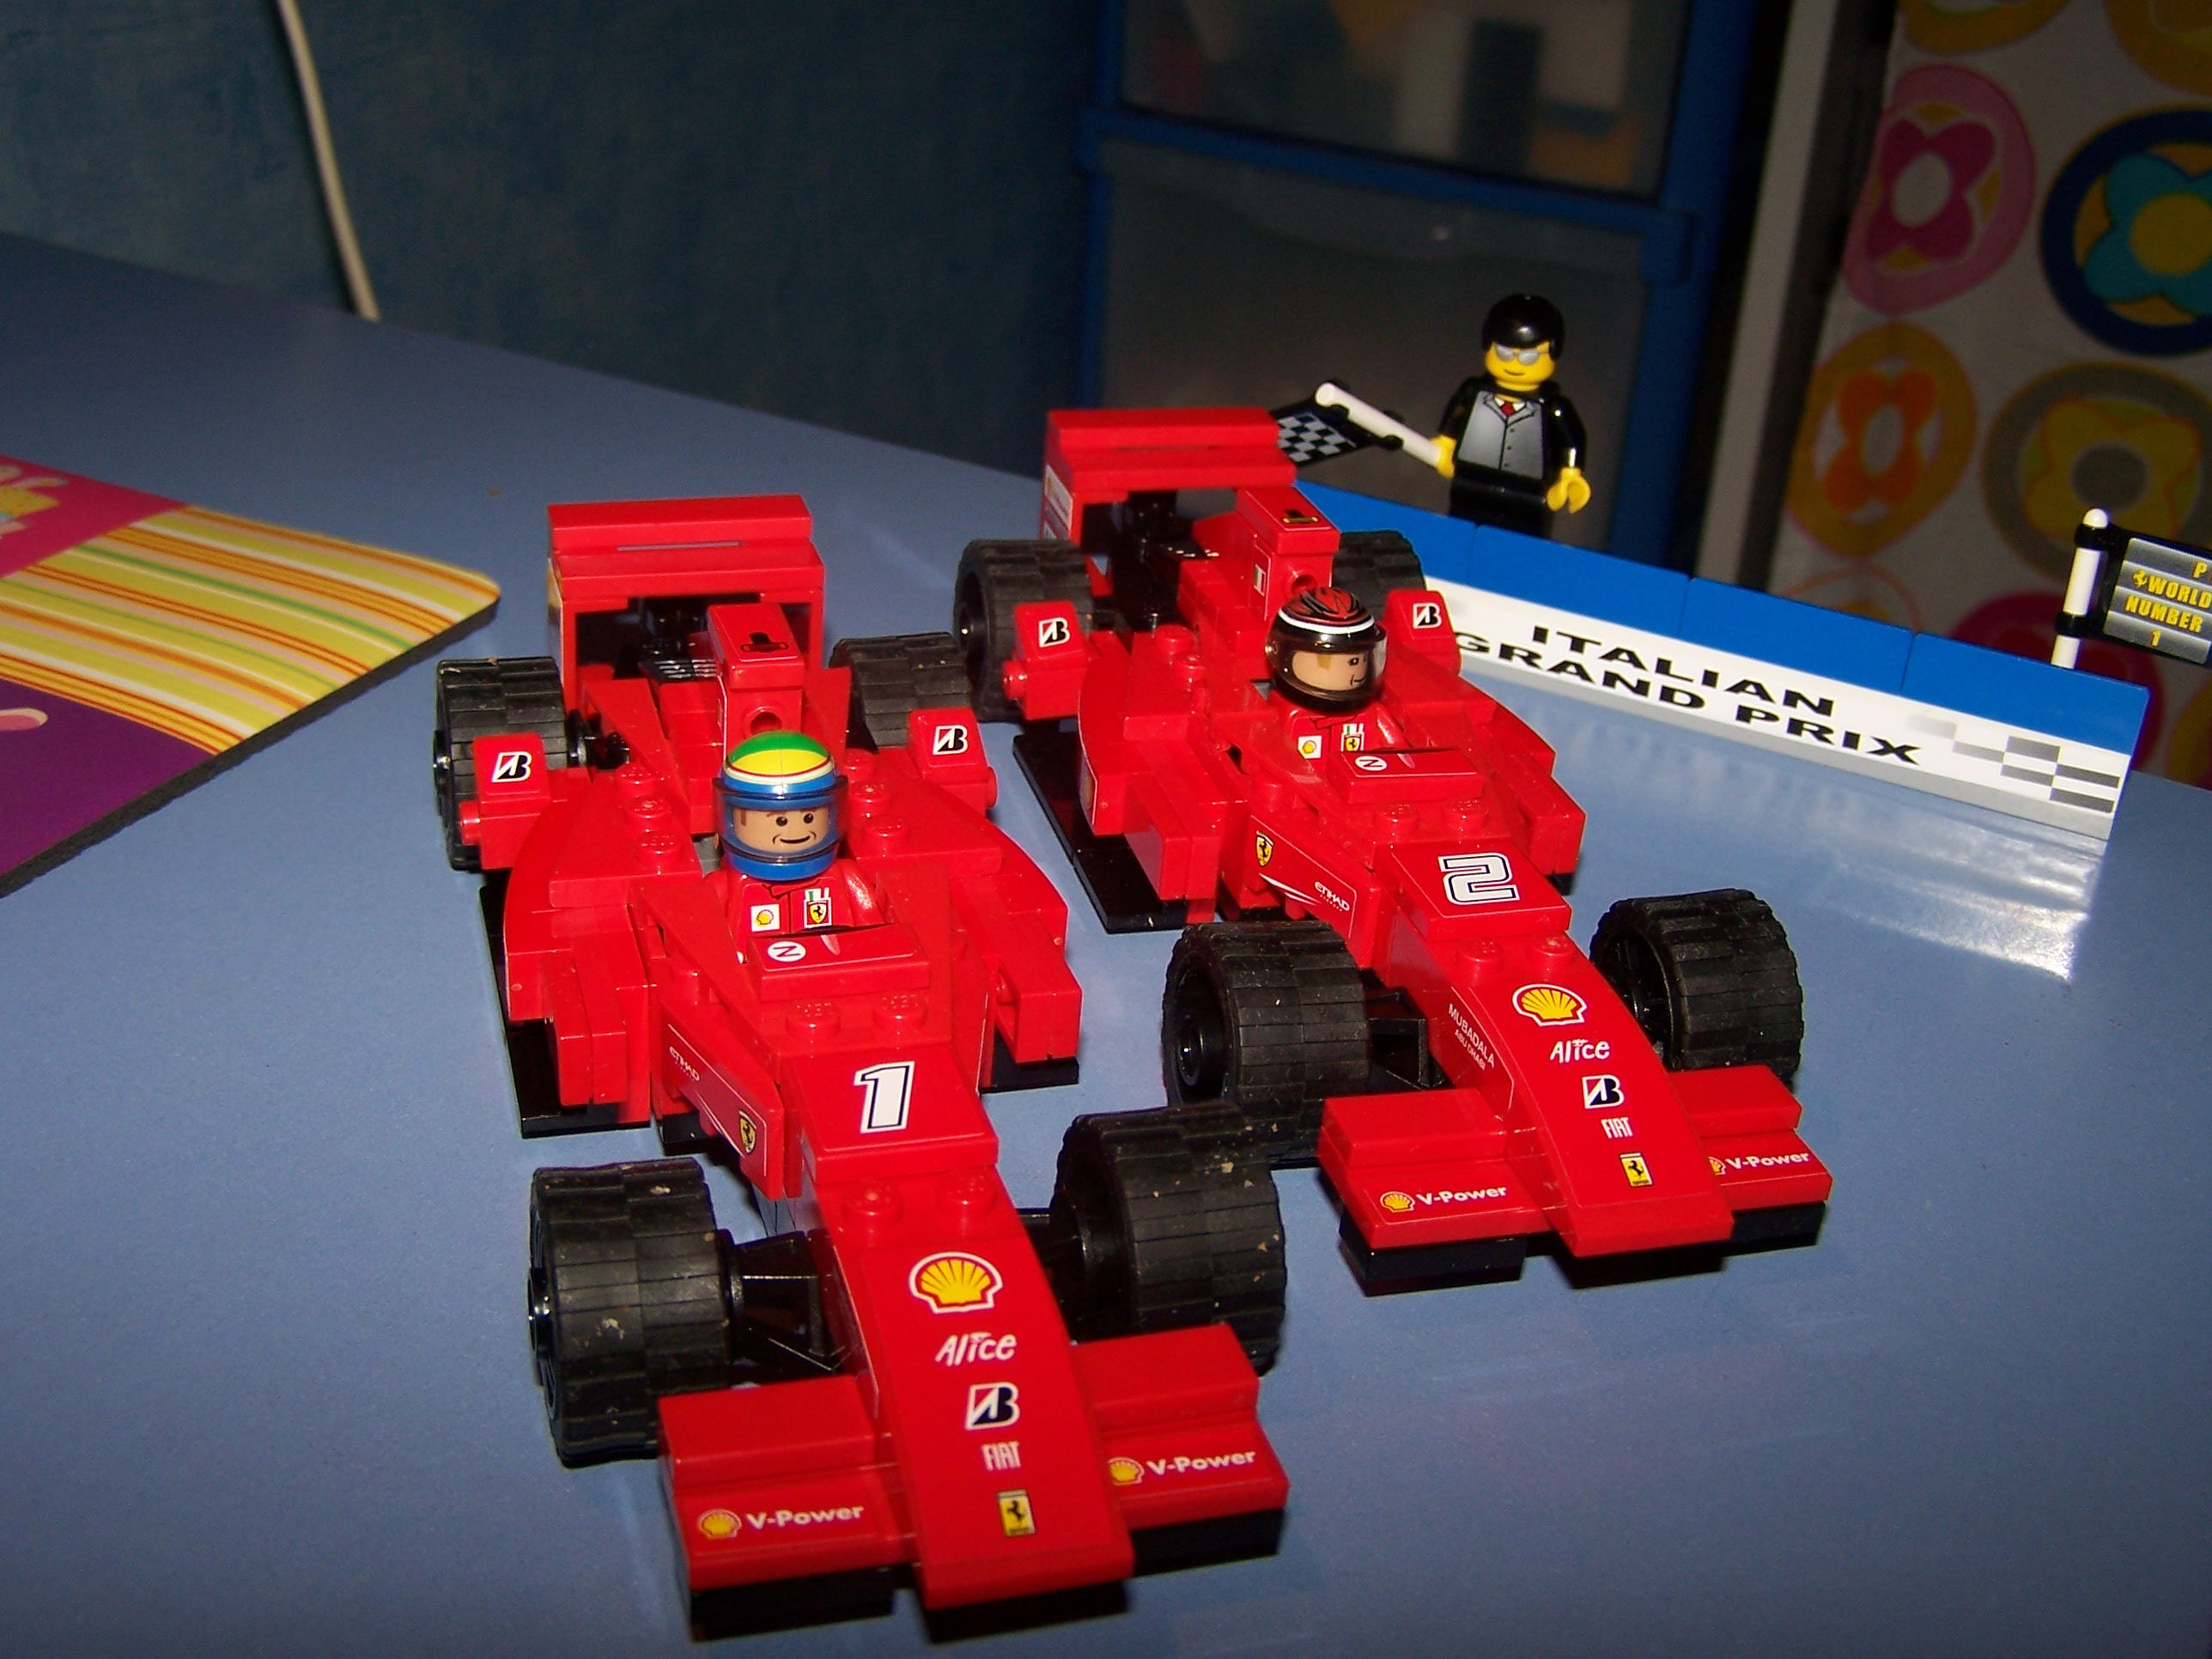 lego racers 8168 ferrari victory freelug. Black Bedroom Furniture Sets. Home Design Ideas